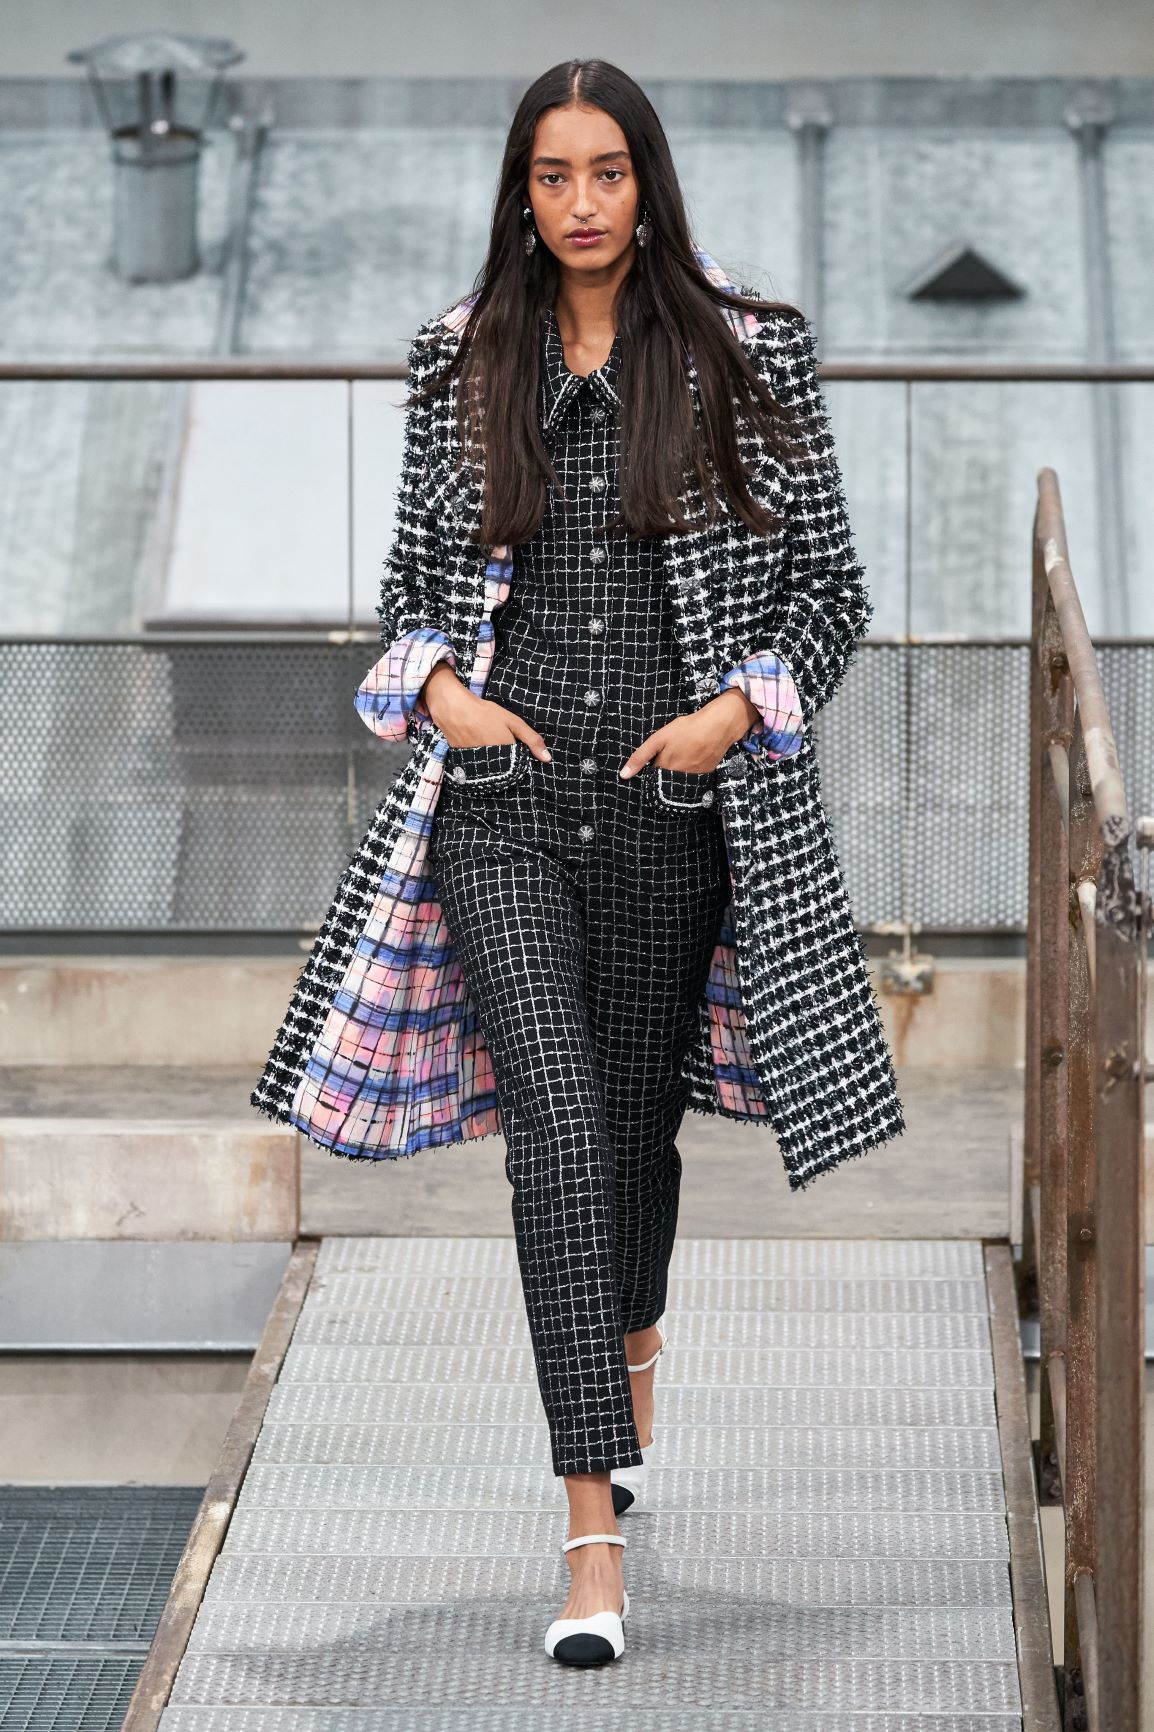 Chanel Summer 2020.Chanel Spring Summer 2020 Collection Style Blog Canadian